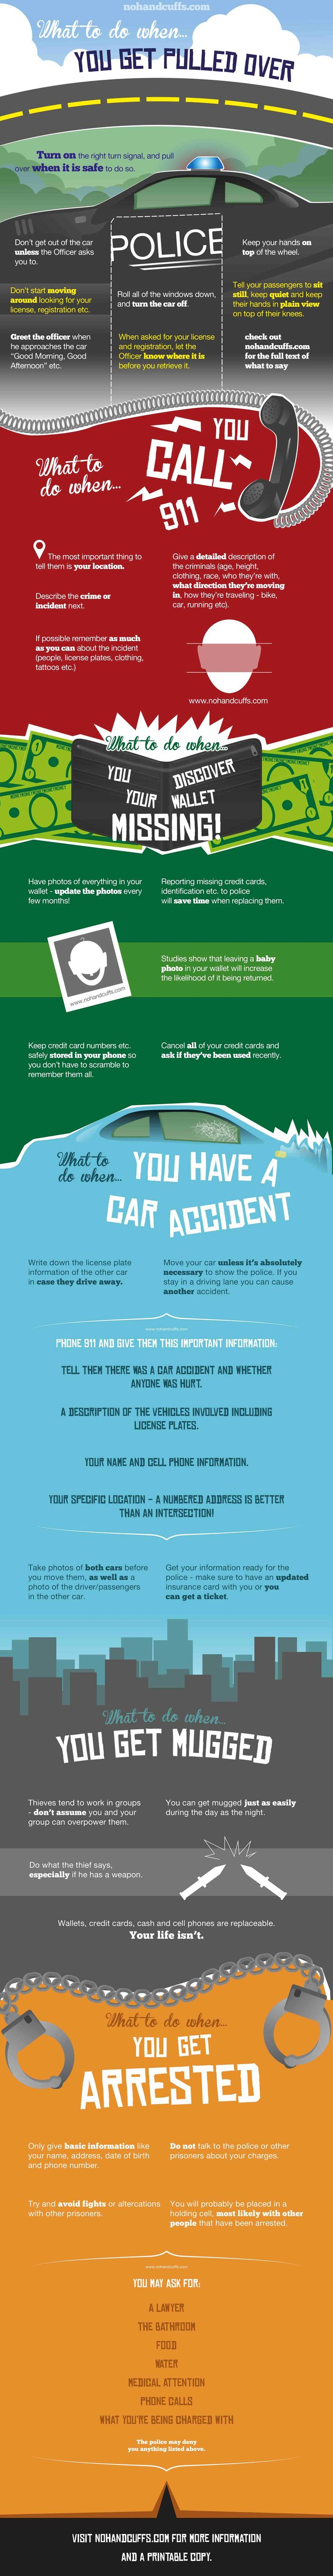 Emergency Guidelines by nohandcuffs via infographicsmania: S+++t happens. If you fall in tough luck either due to boldness or to random emergency these tips can help you get off unharmed. #Infographic #Emergency